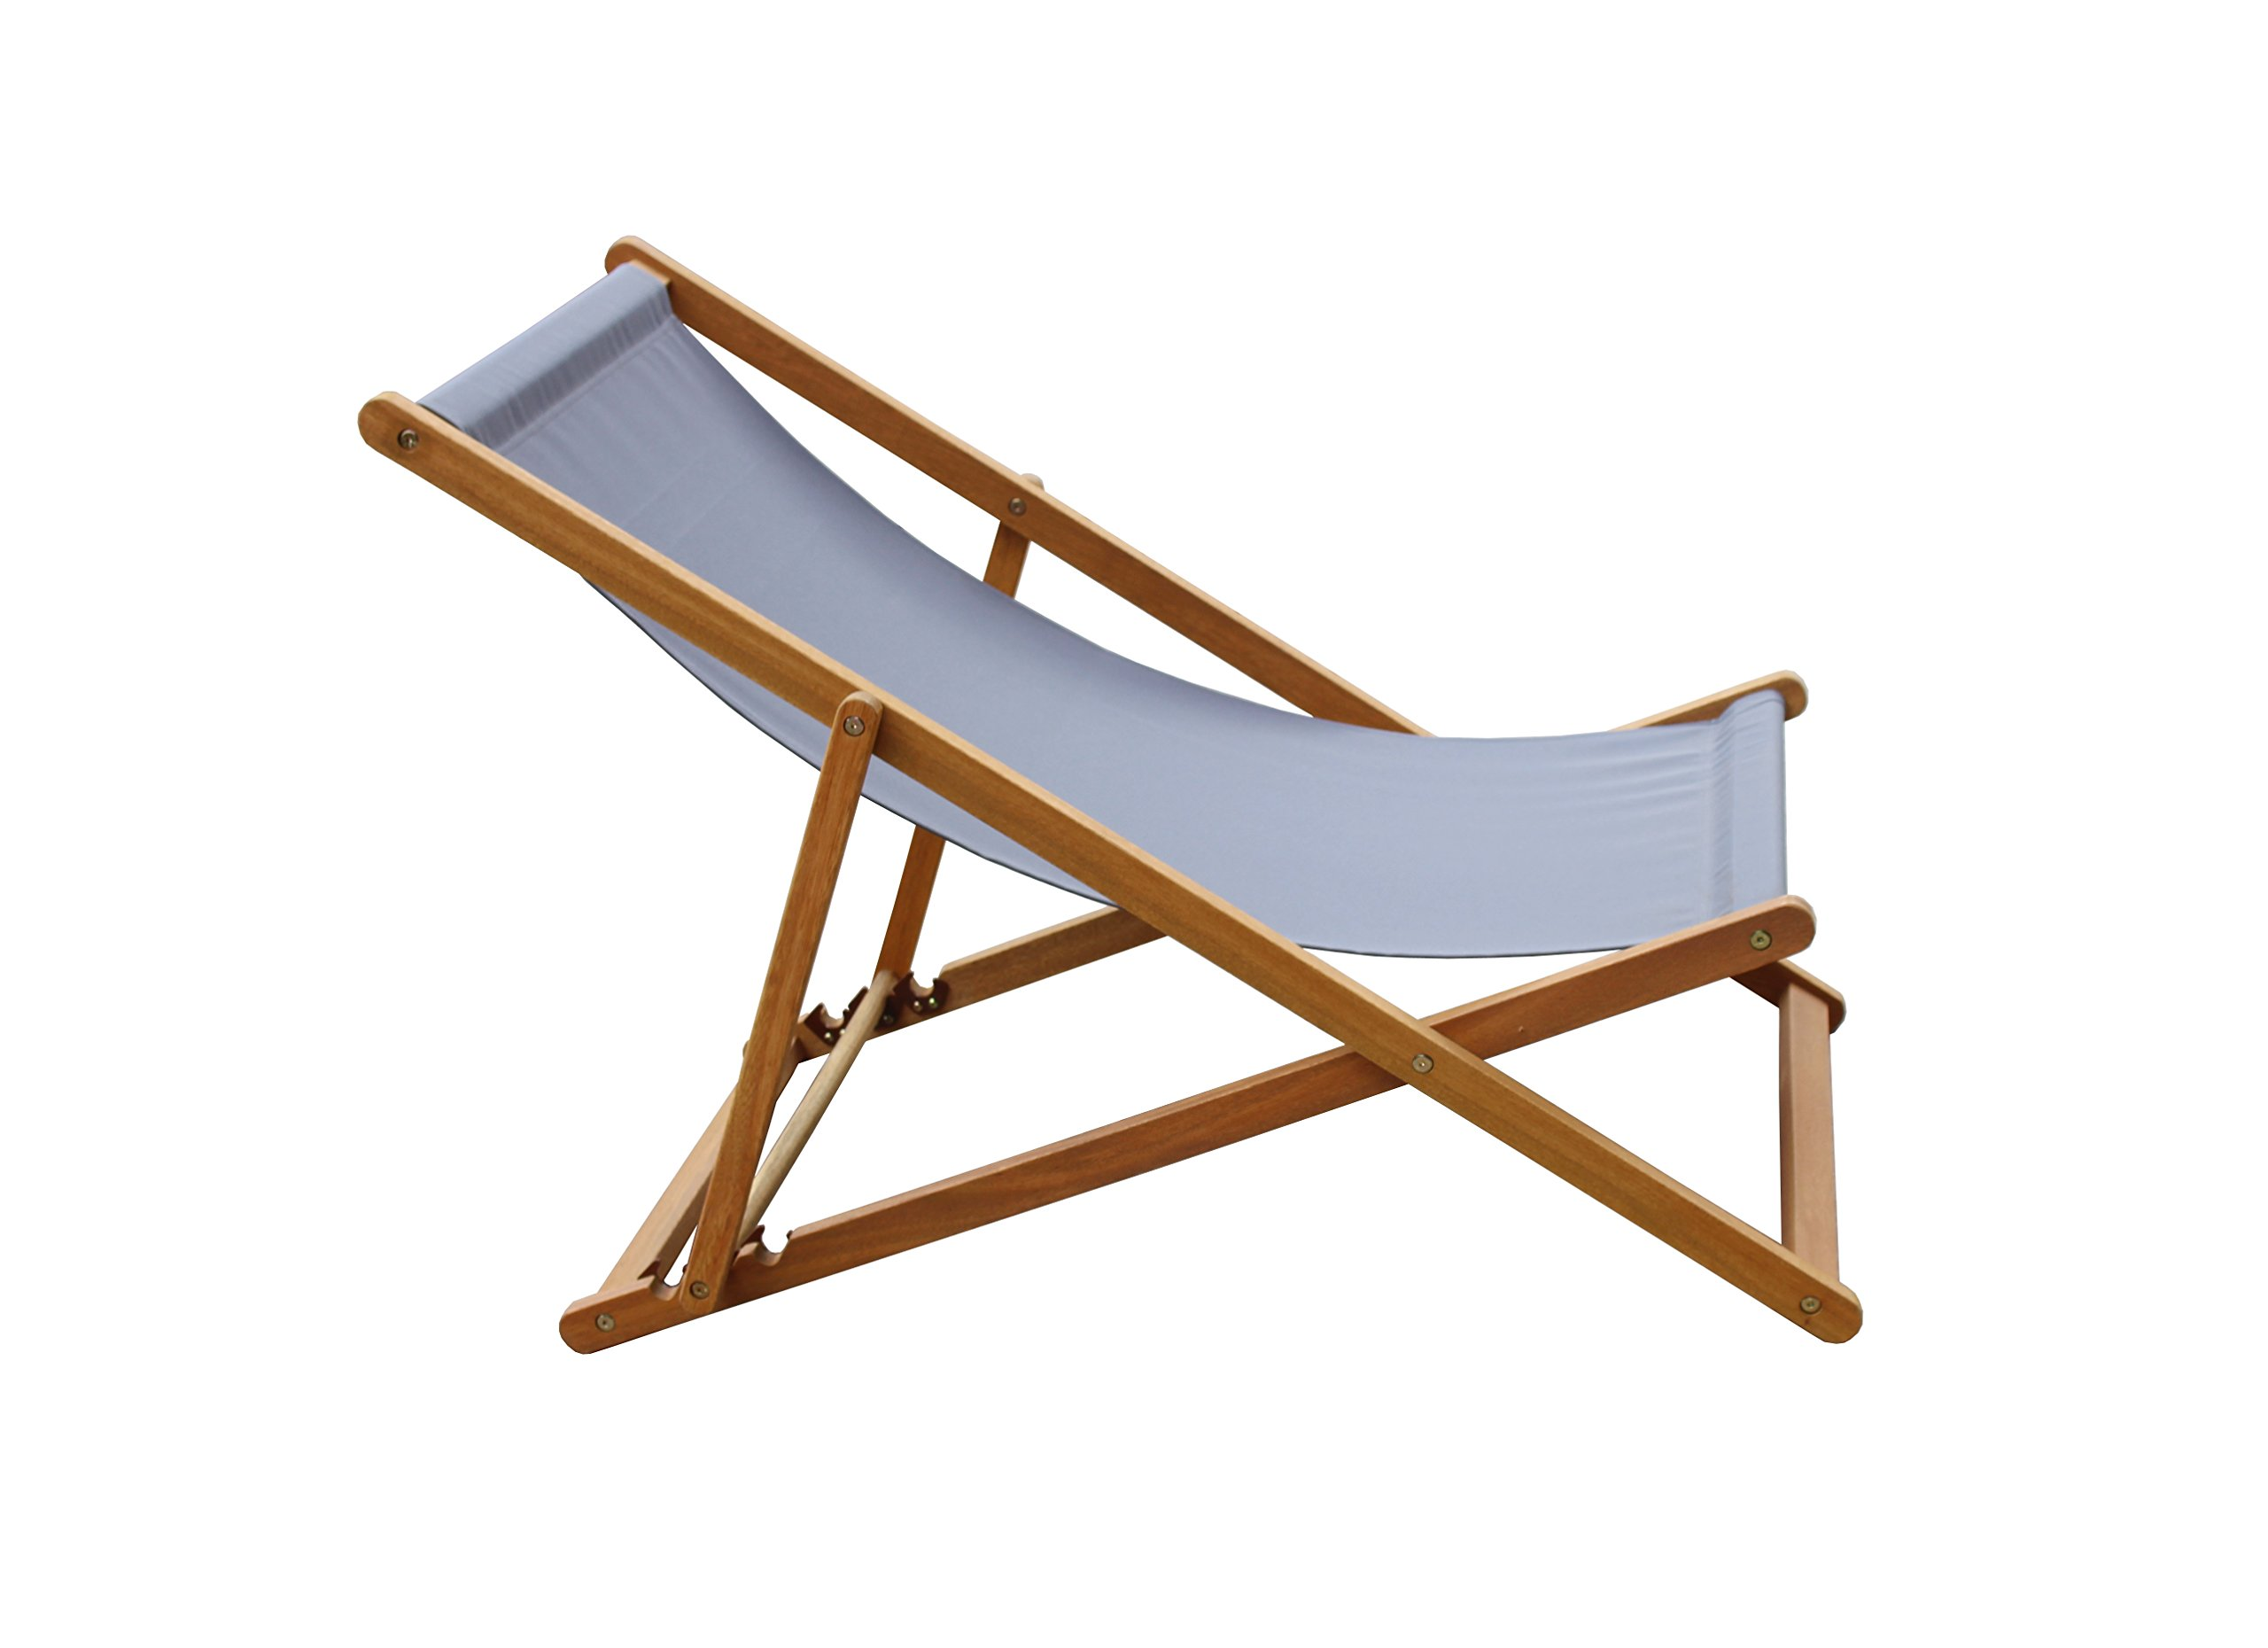 Amayo Home Solid Eucalyptus Wood Foldable Sling Chair Garden Seating, Hold 250lbs, Grey Canvas, Adjustable with 3 Reclining Positions. No Assembly. Comfortably Relax Chair in Garden Porch Pool by by Amayo Home (Image #4)